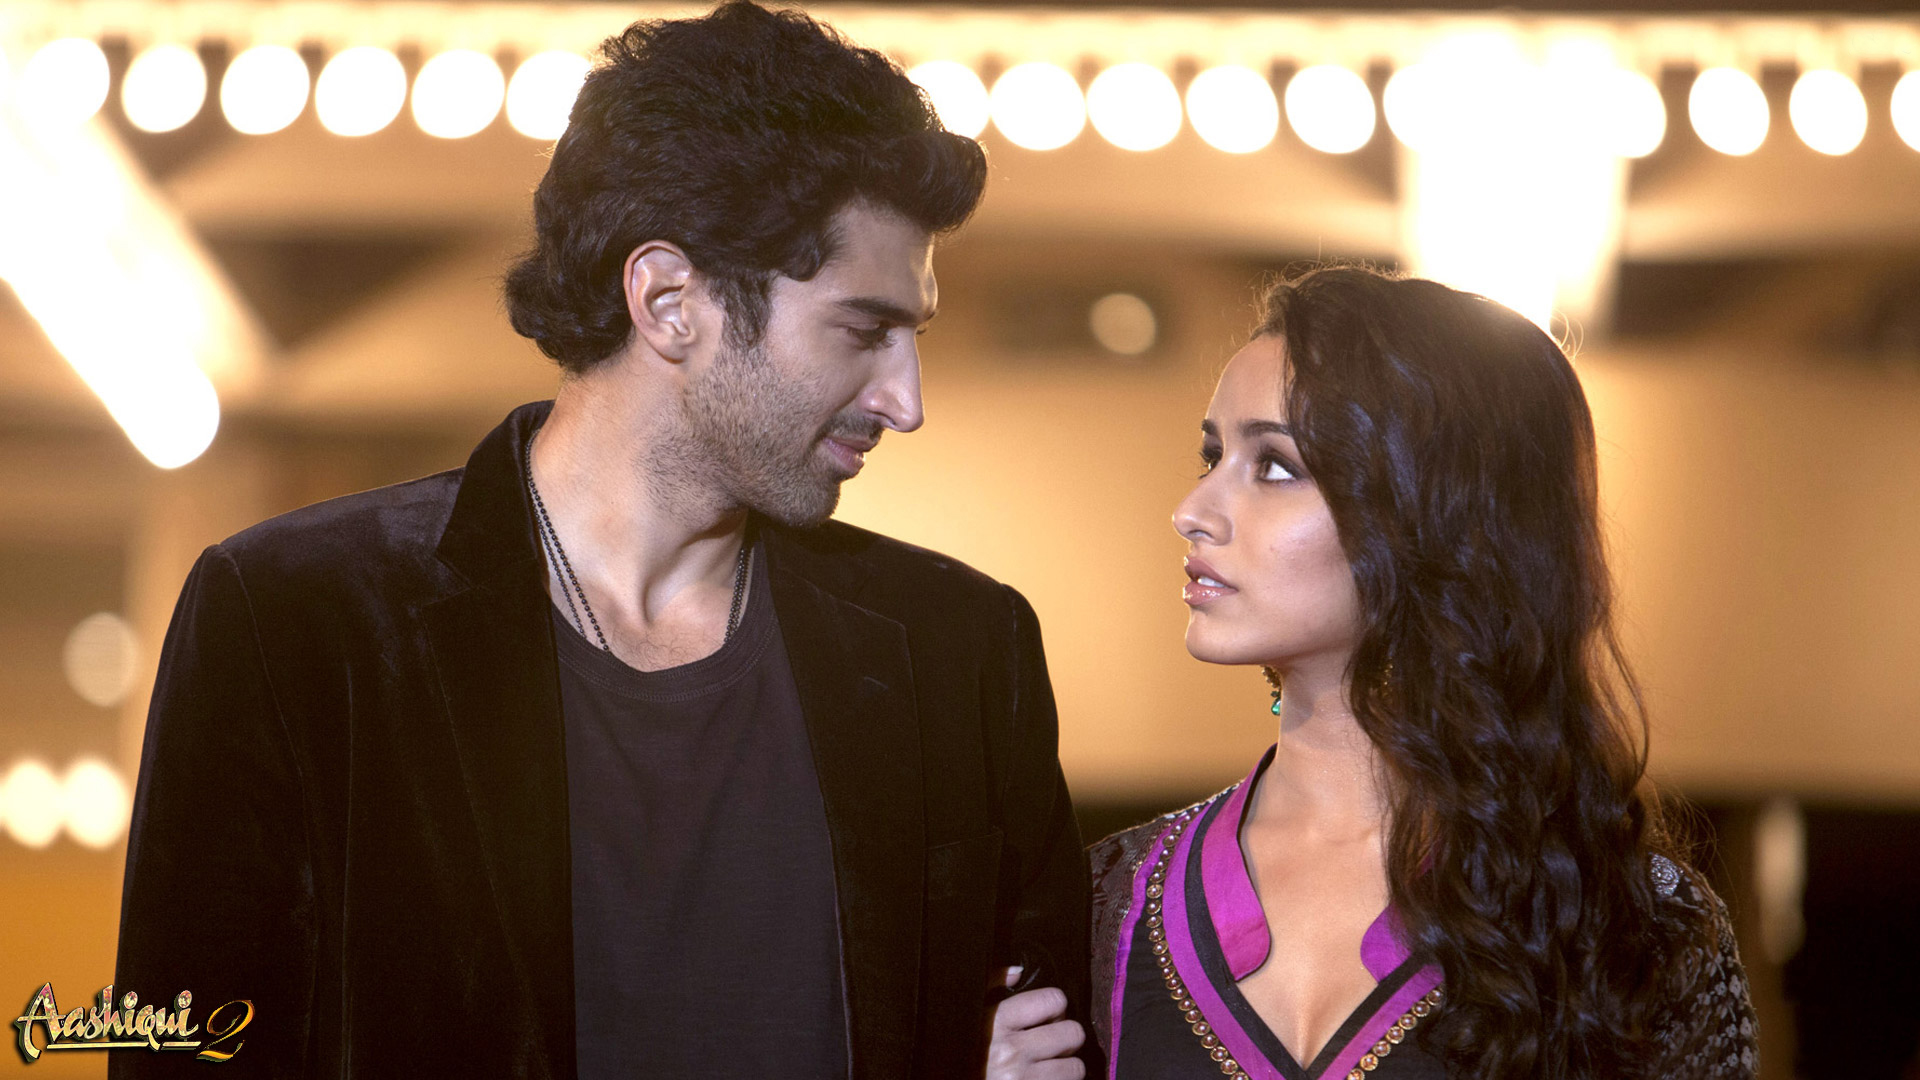 aashiqui 2 songs download pagalworld mp4